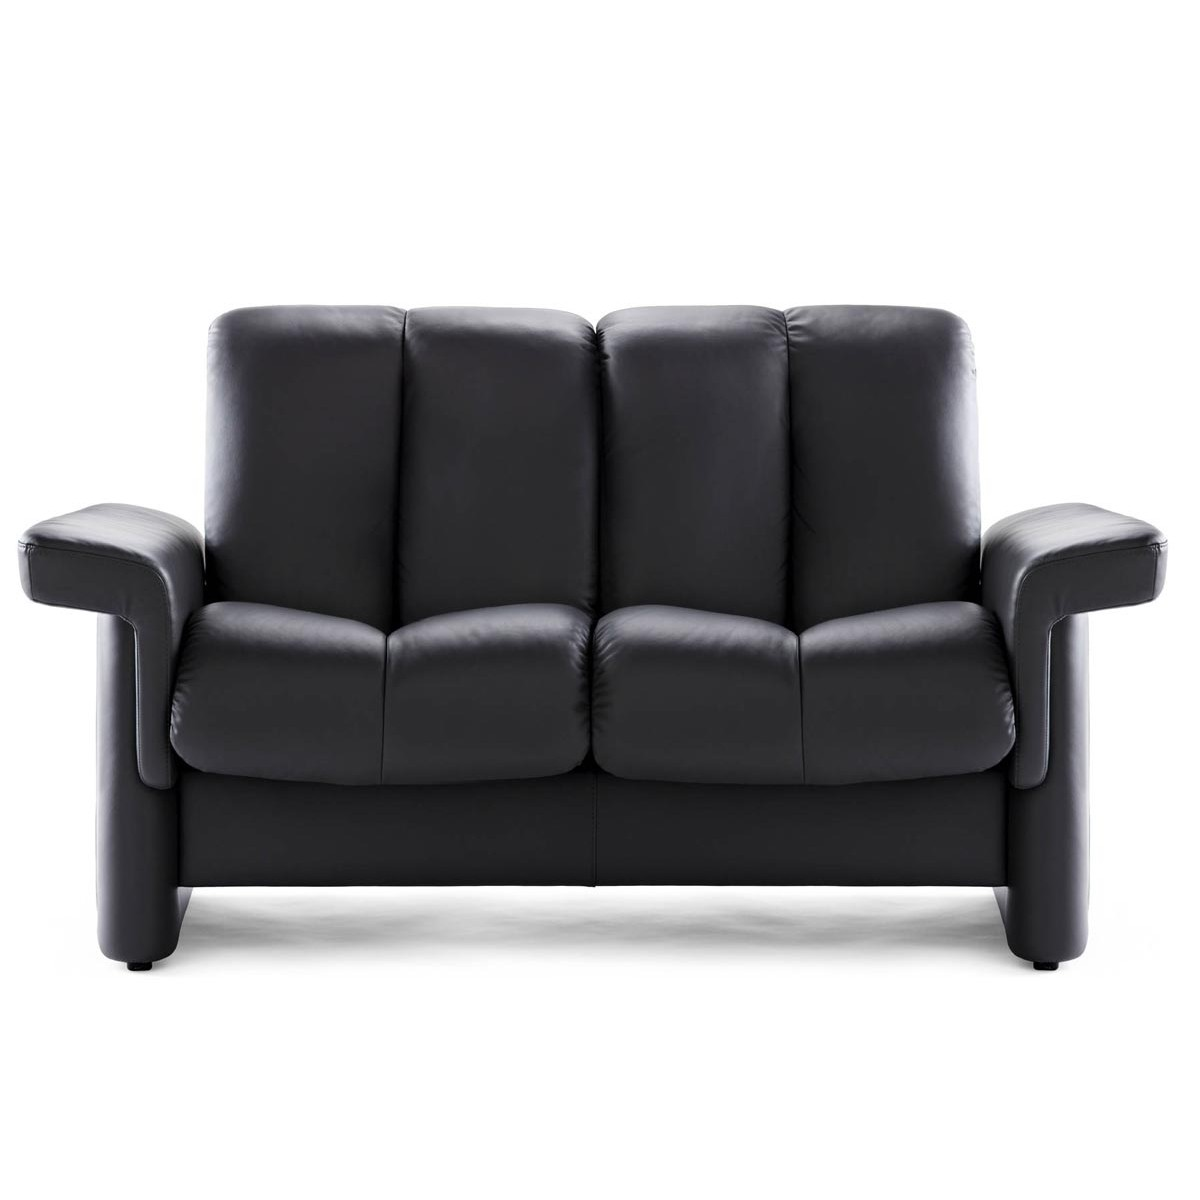 Stressless Legend Low Back Loveseat From 3 By Stressless Danco Modern